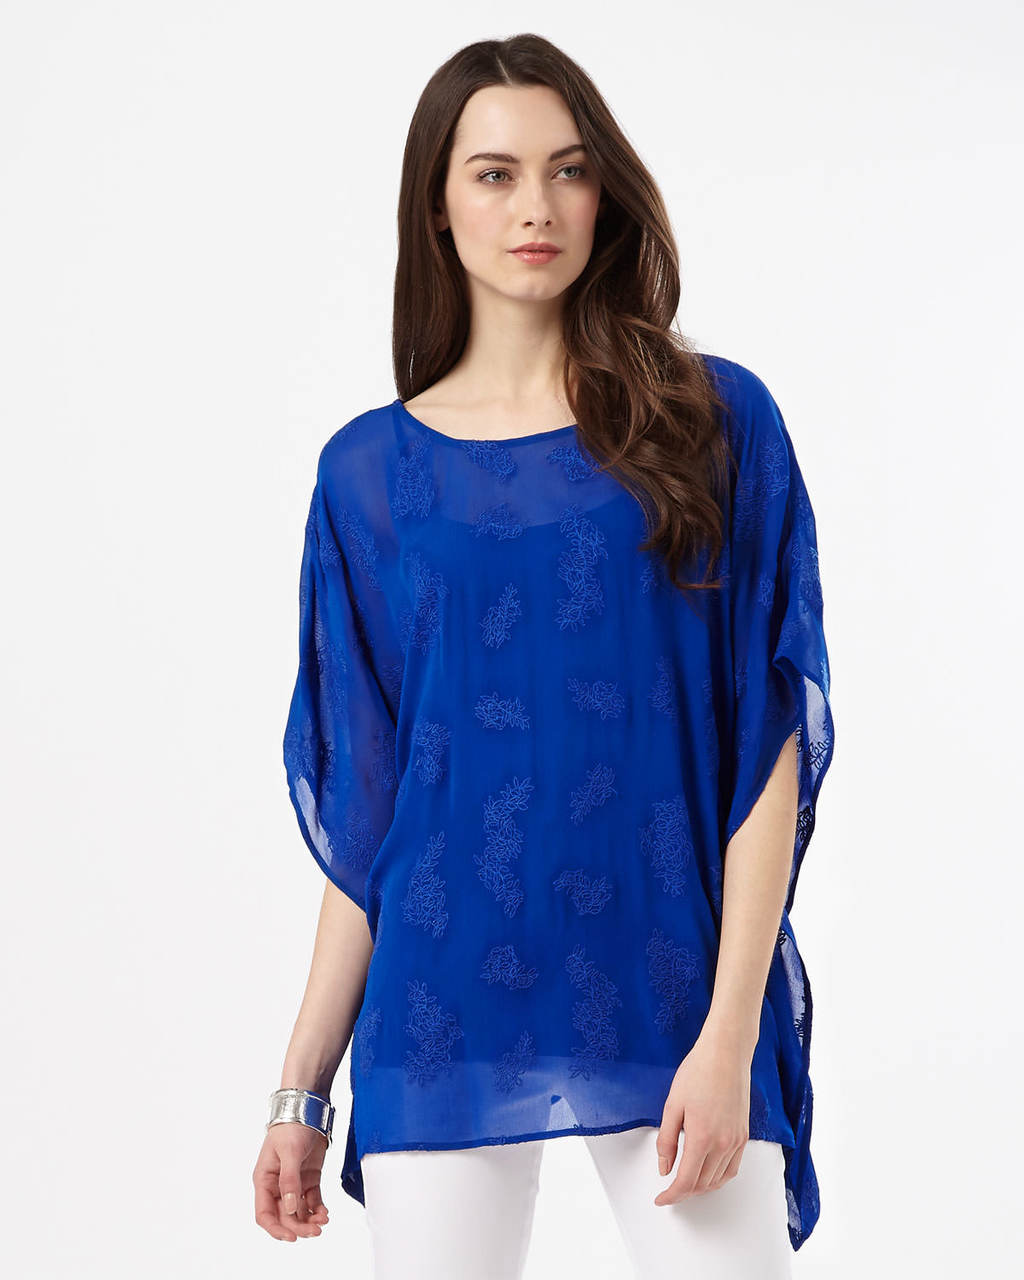 Guilia Embroidered Tunic - neckline: round neck; sleeve style: dolman/batwing; pattern: plain; length: below the bottom; style: tunic; predominant colour: royal blue; occasions: casual, evening; fibres: viscose/rayon - 100%; fit: body skimming; sleeve length: 3/4 length; texture group: sheer fabrics/chiffon/organza etc.; pattern type: fabric; embellishment: embroidered; season: s/s 2016; wardrobe: highlight